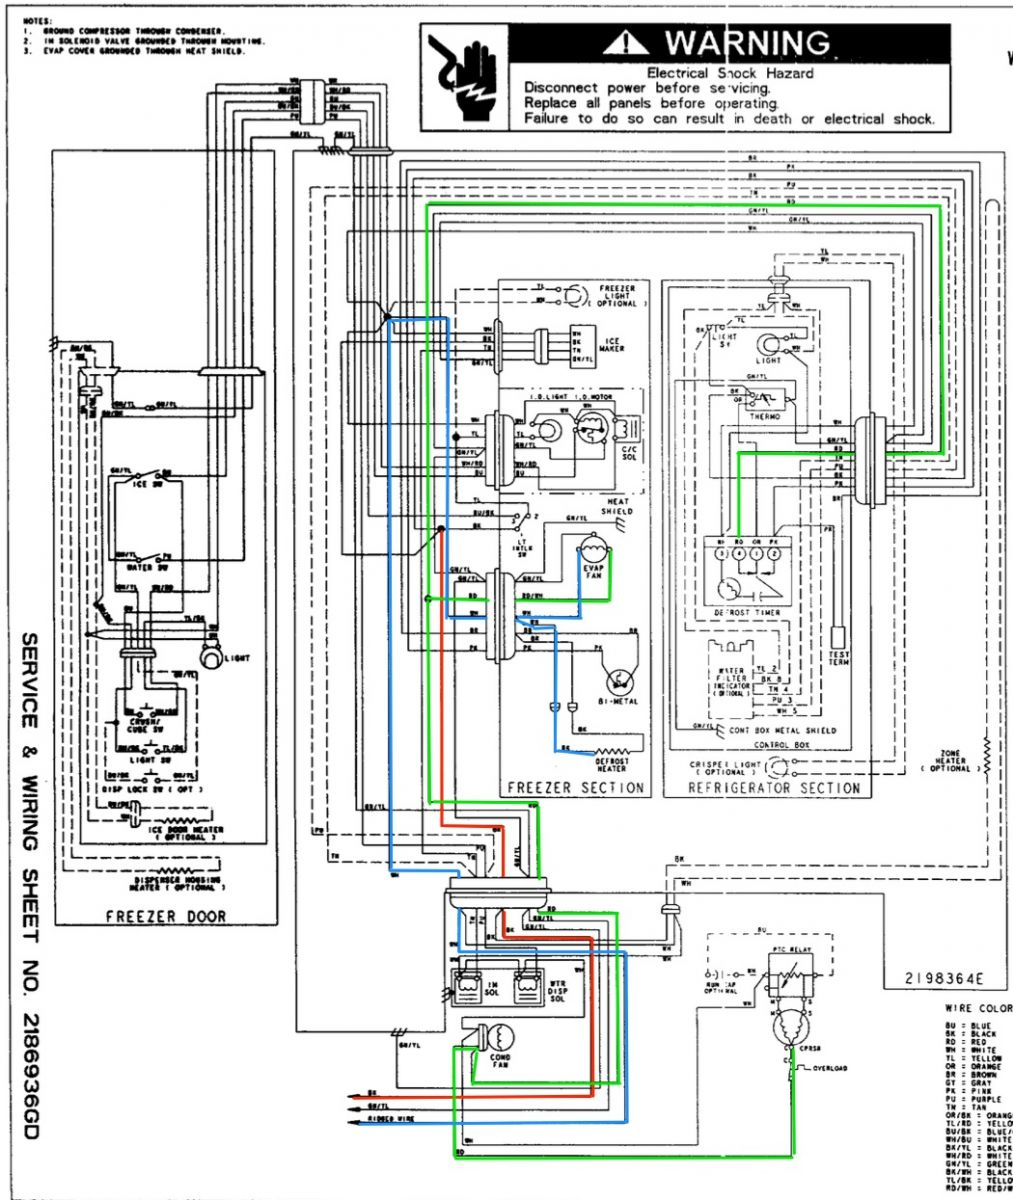 gallery_4_4_346879 whirlpool ed25rfxfw01 refrigerator wiring diagram the whirlpool refrigerator wiring diagram at edmiracle.co